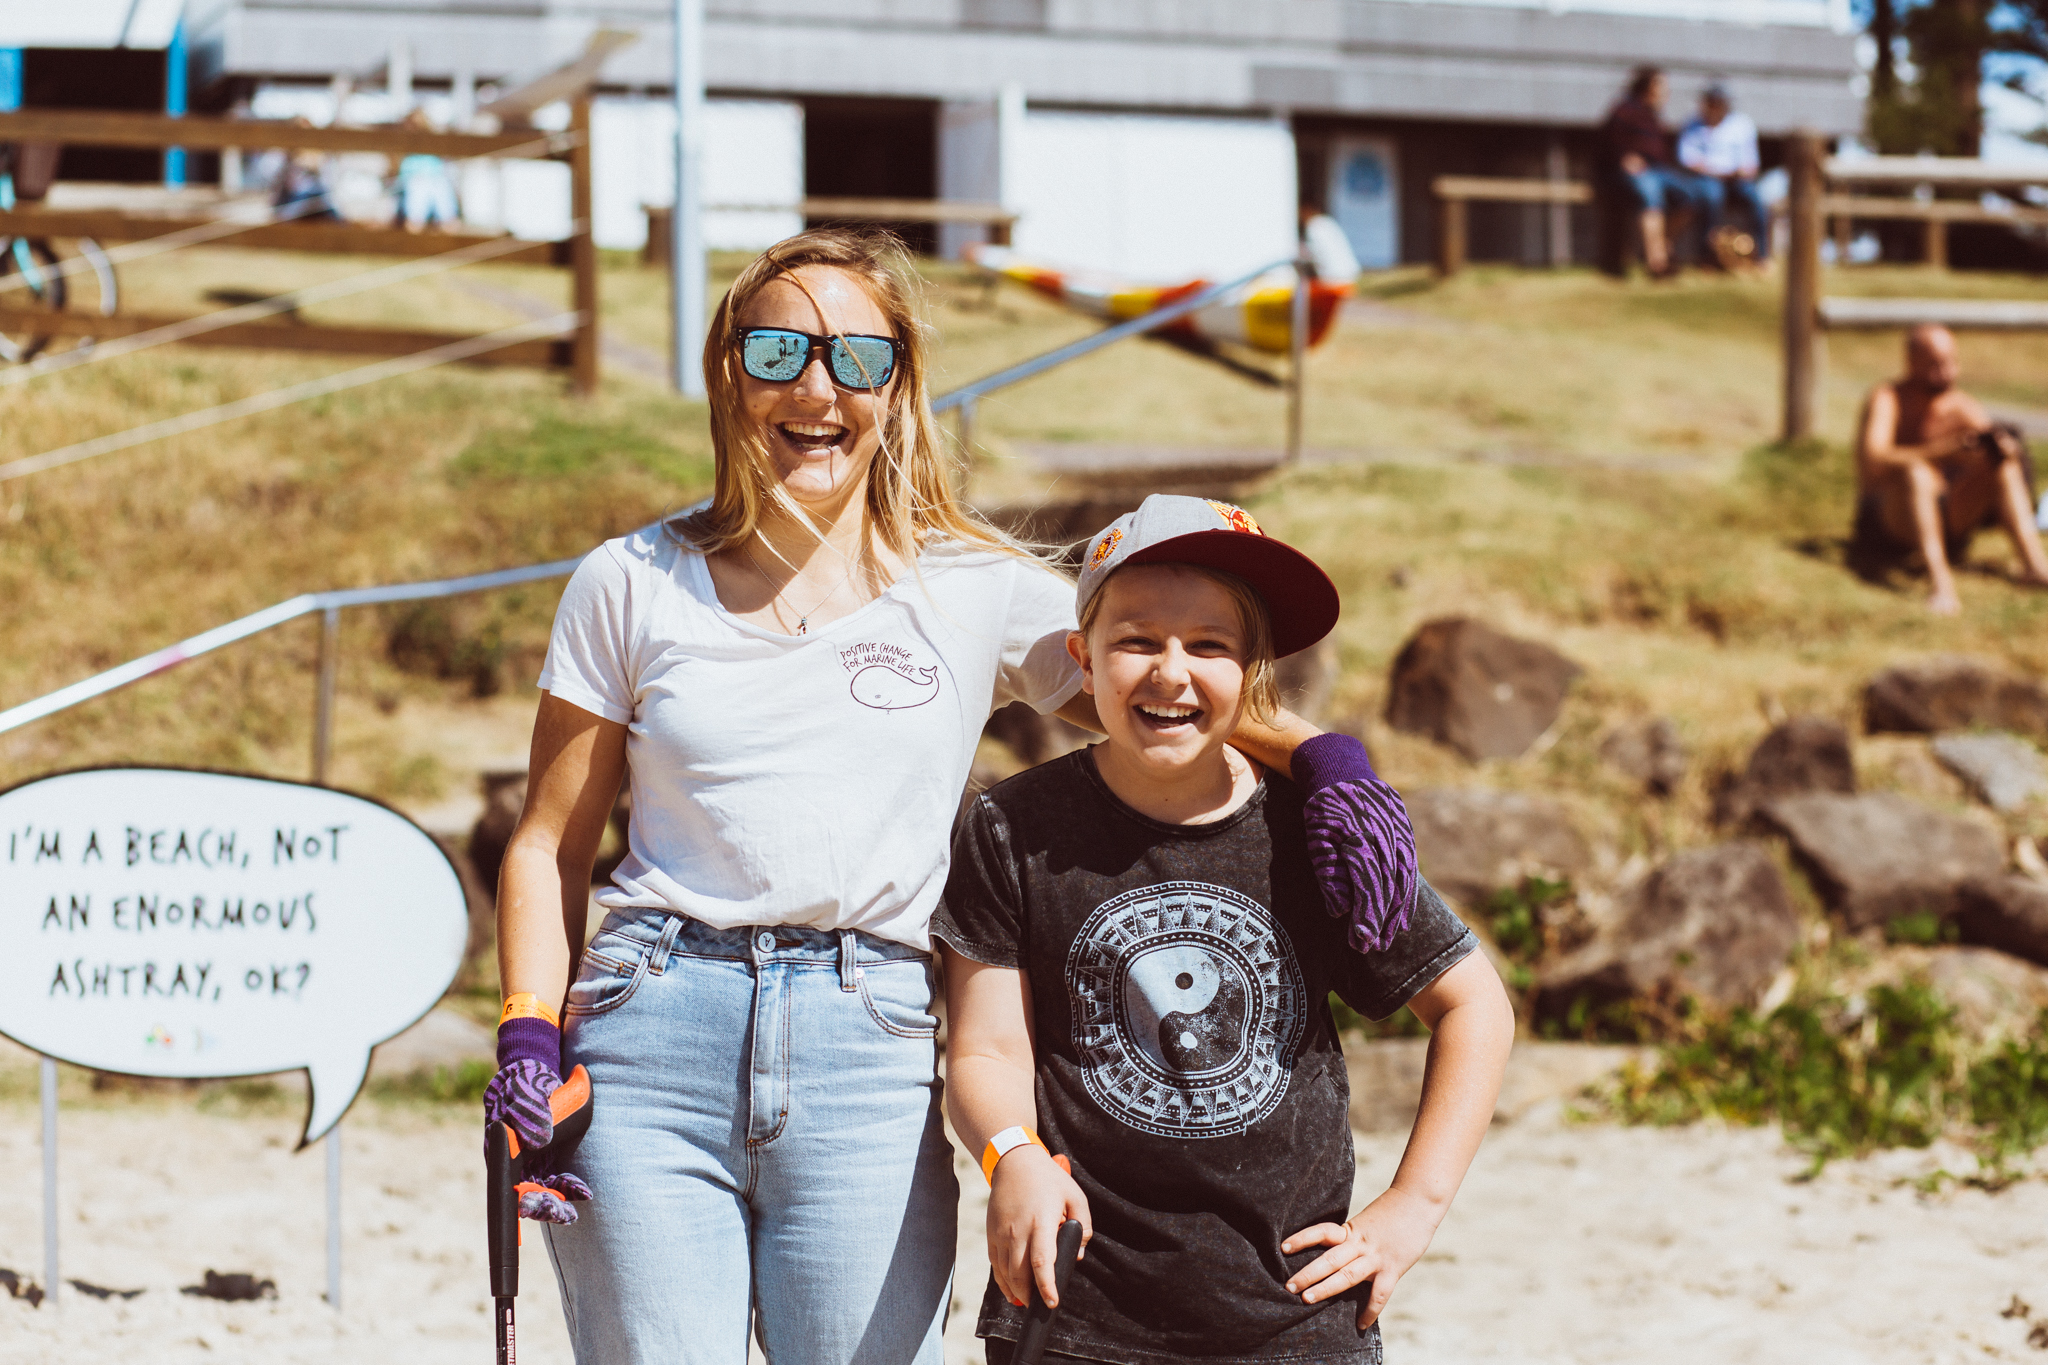 Byron Bay Co-ordinator Zoe White working with local children to raise awareness about marine pollution. Photograph by Dane Scott Creative.